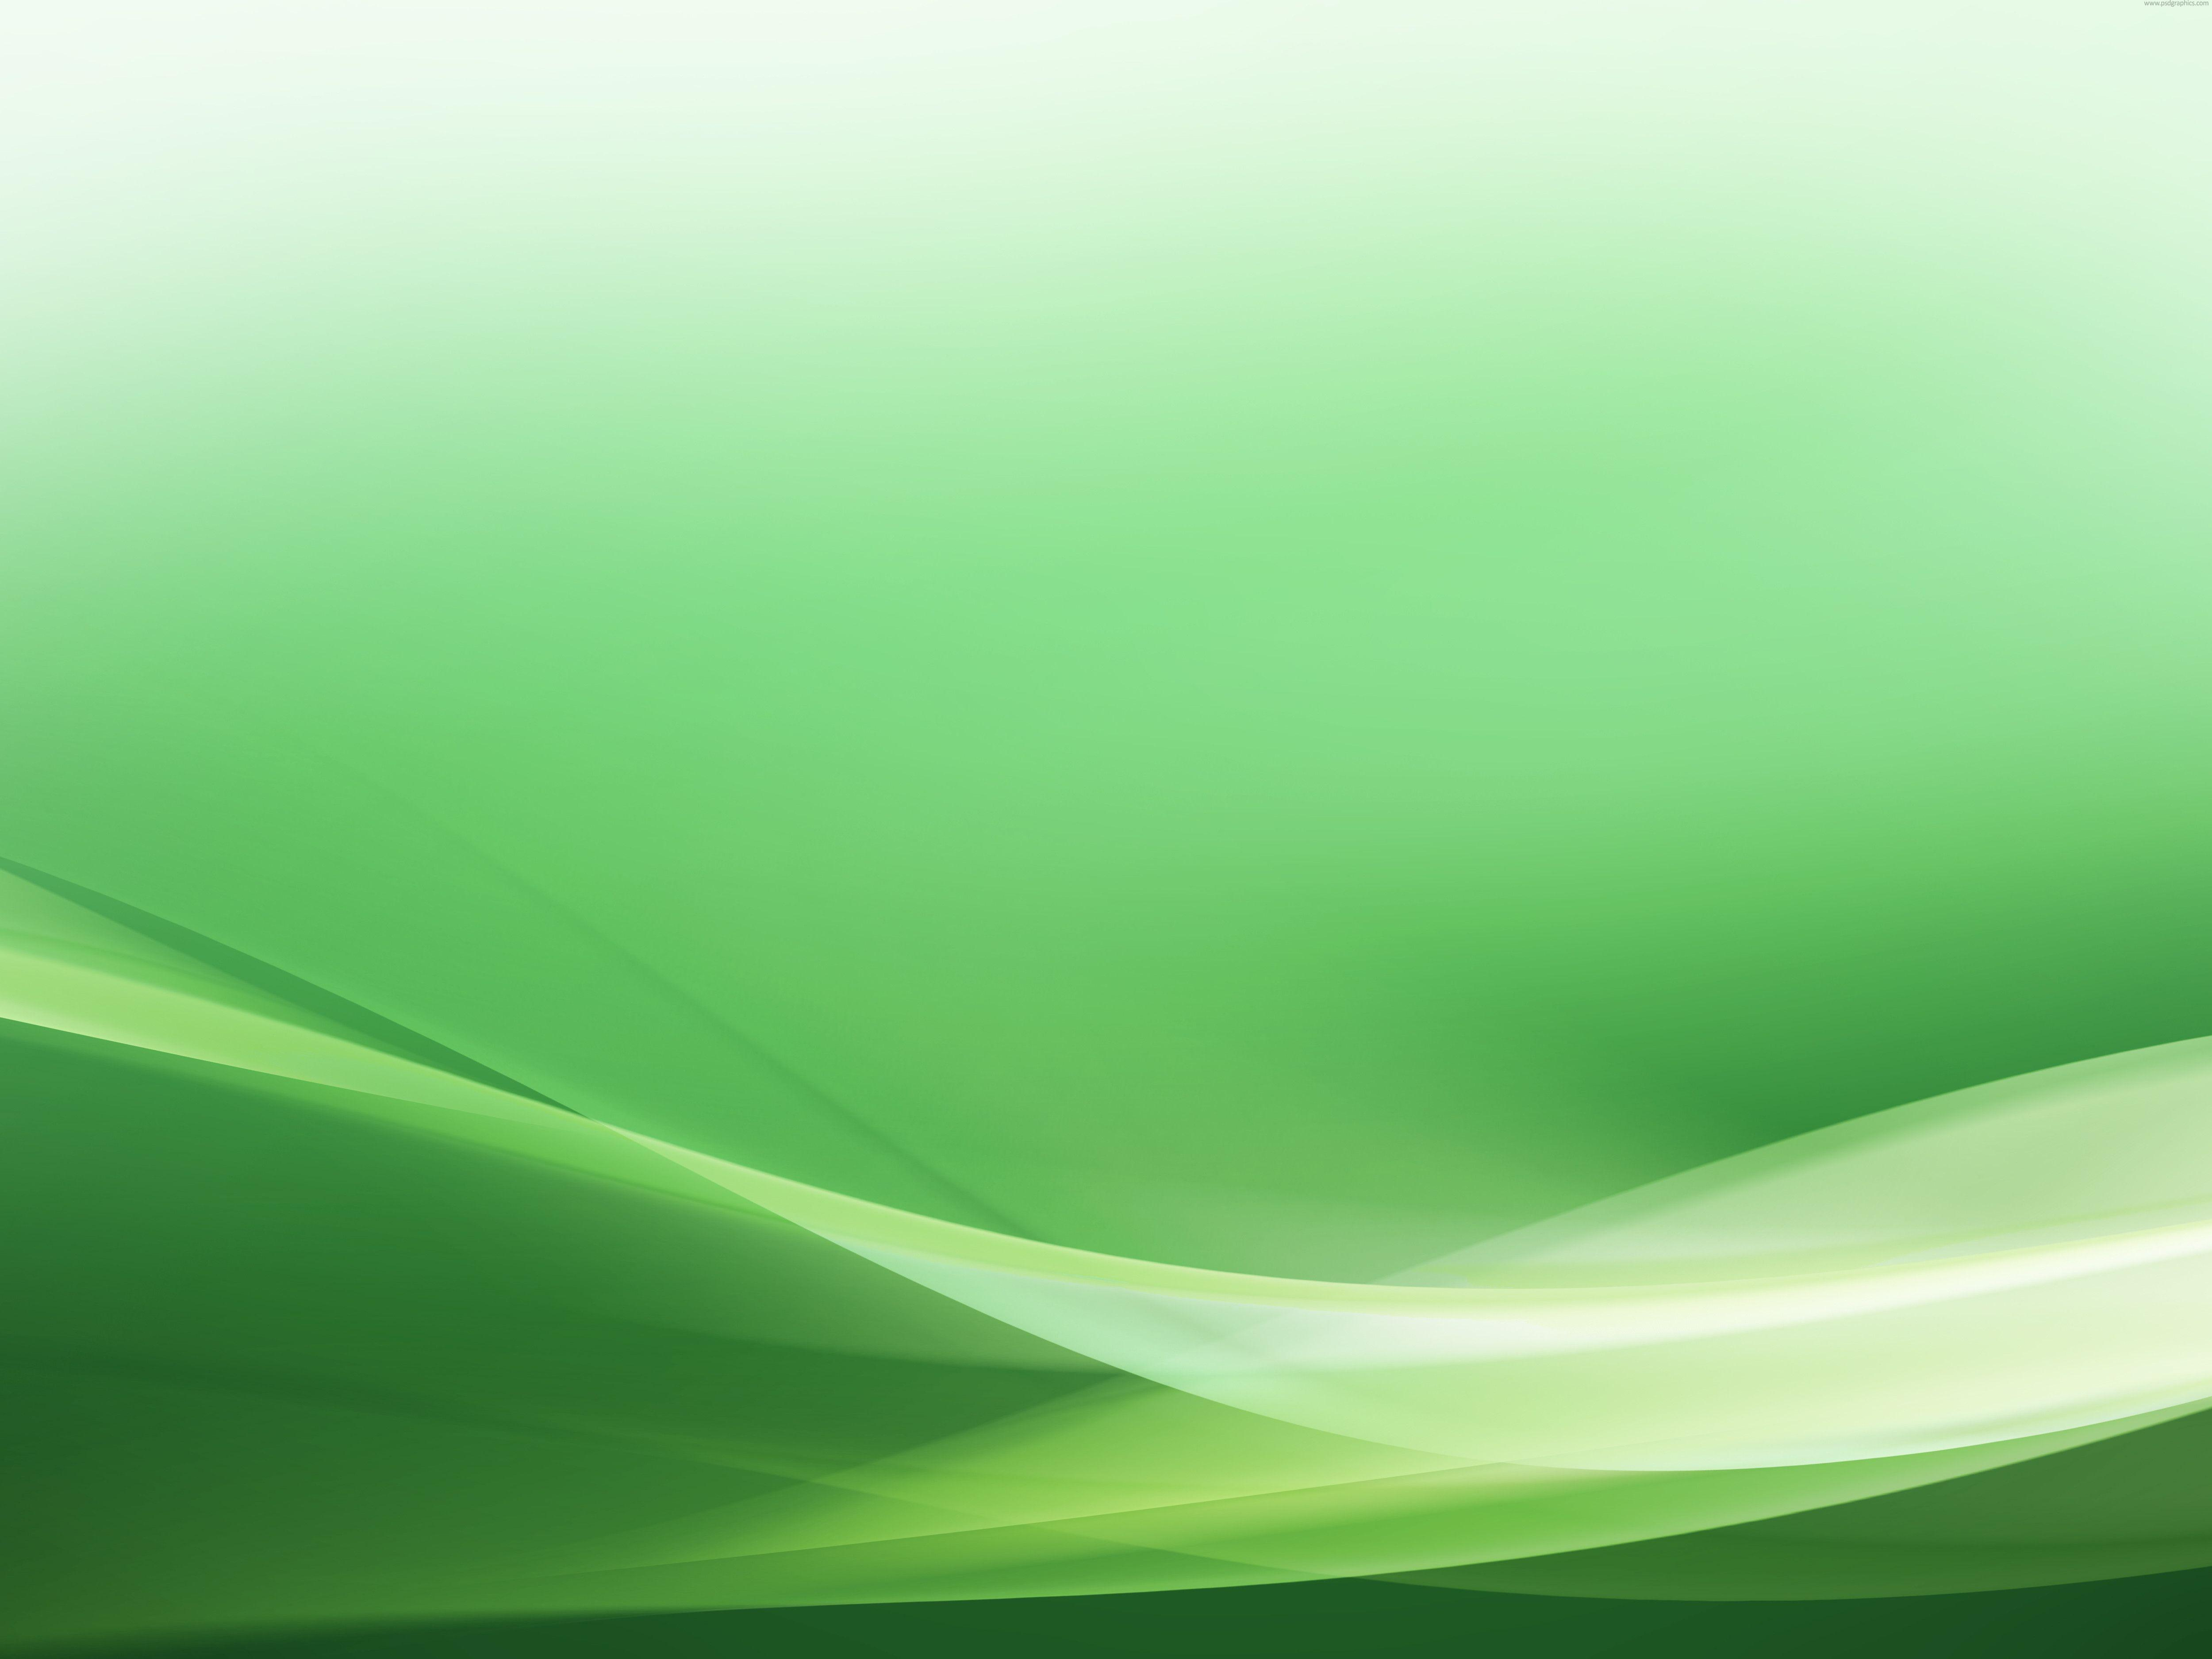 Green design backgrounds